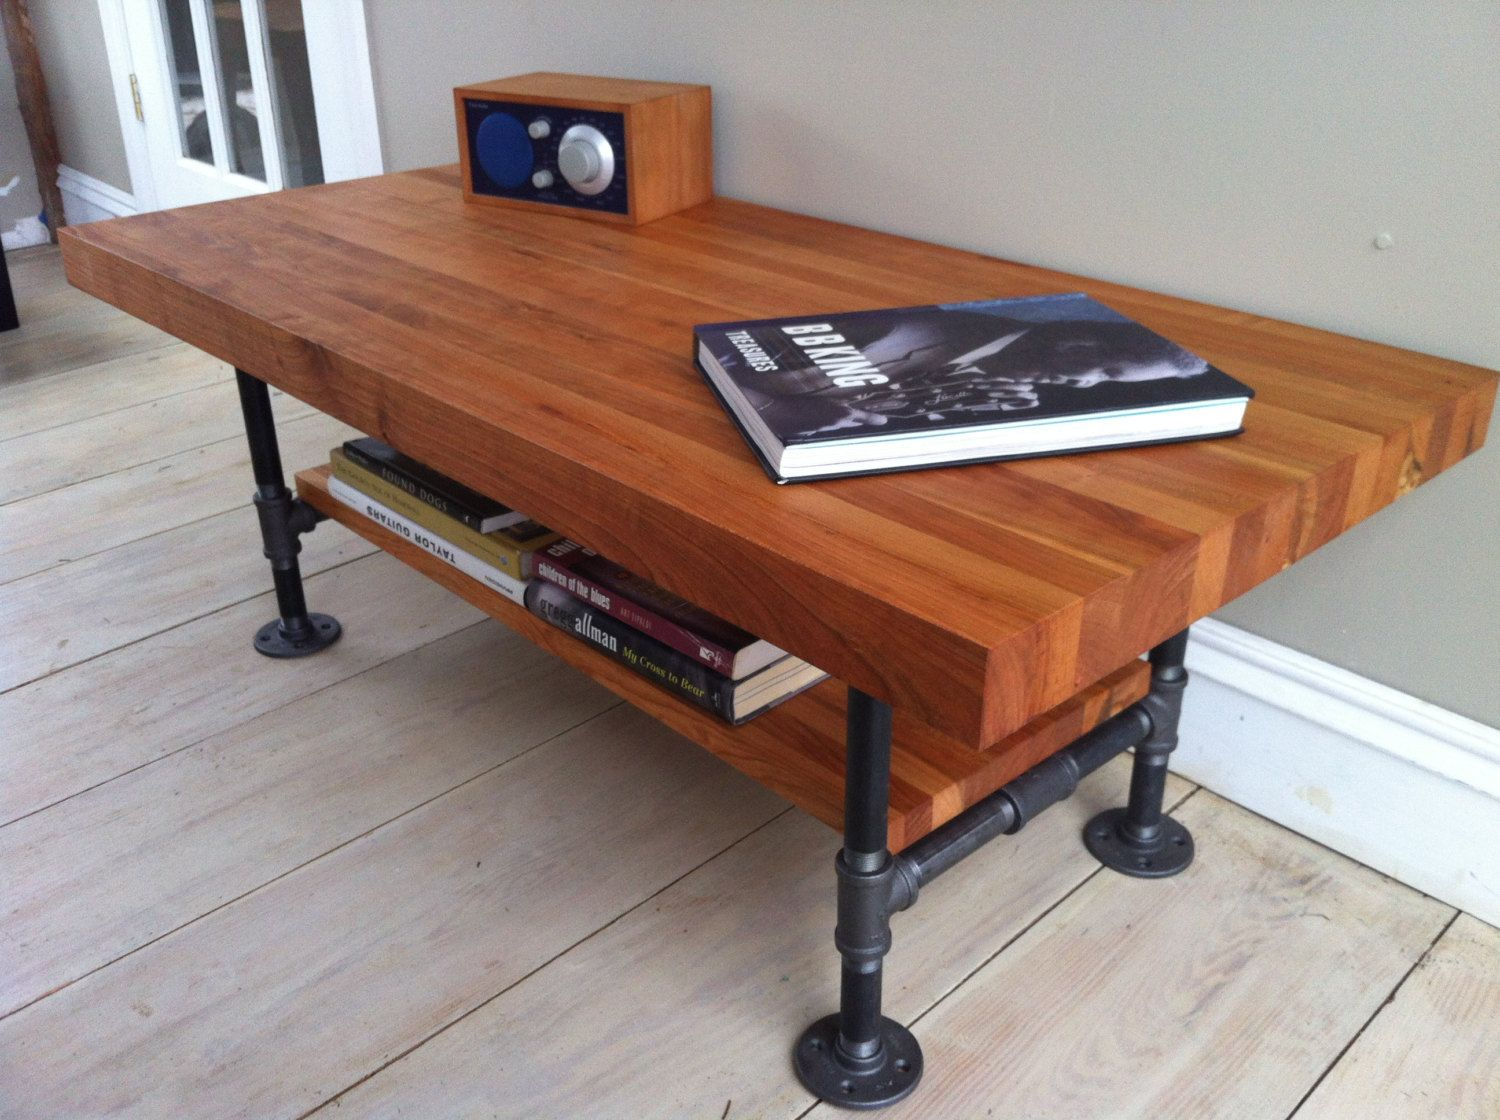 Cherry coffee table, modern industrial style featuring